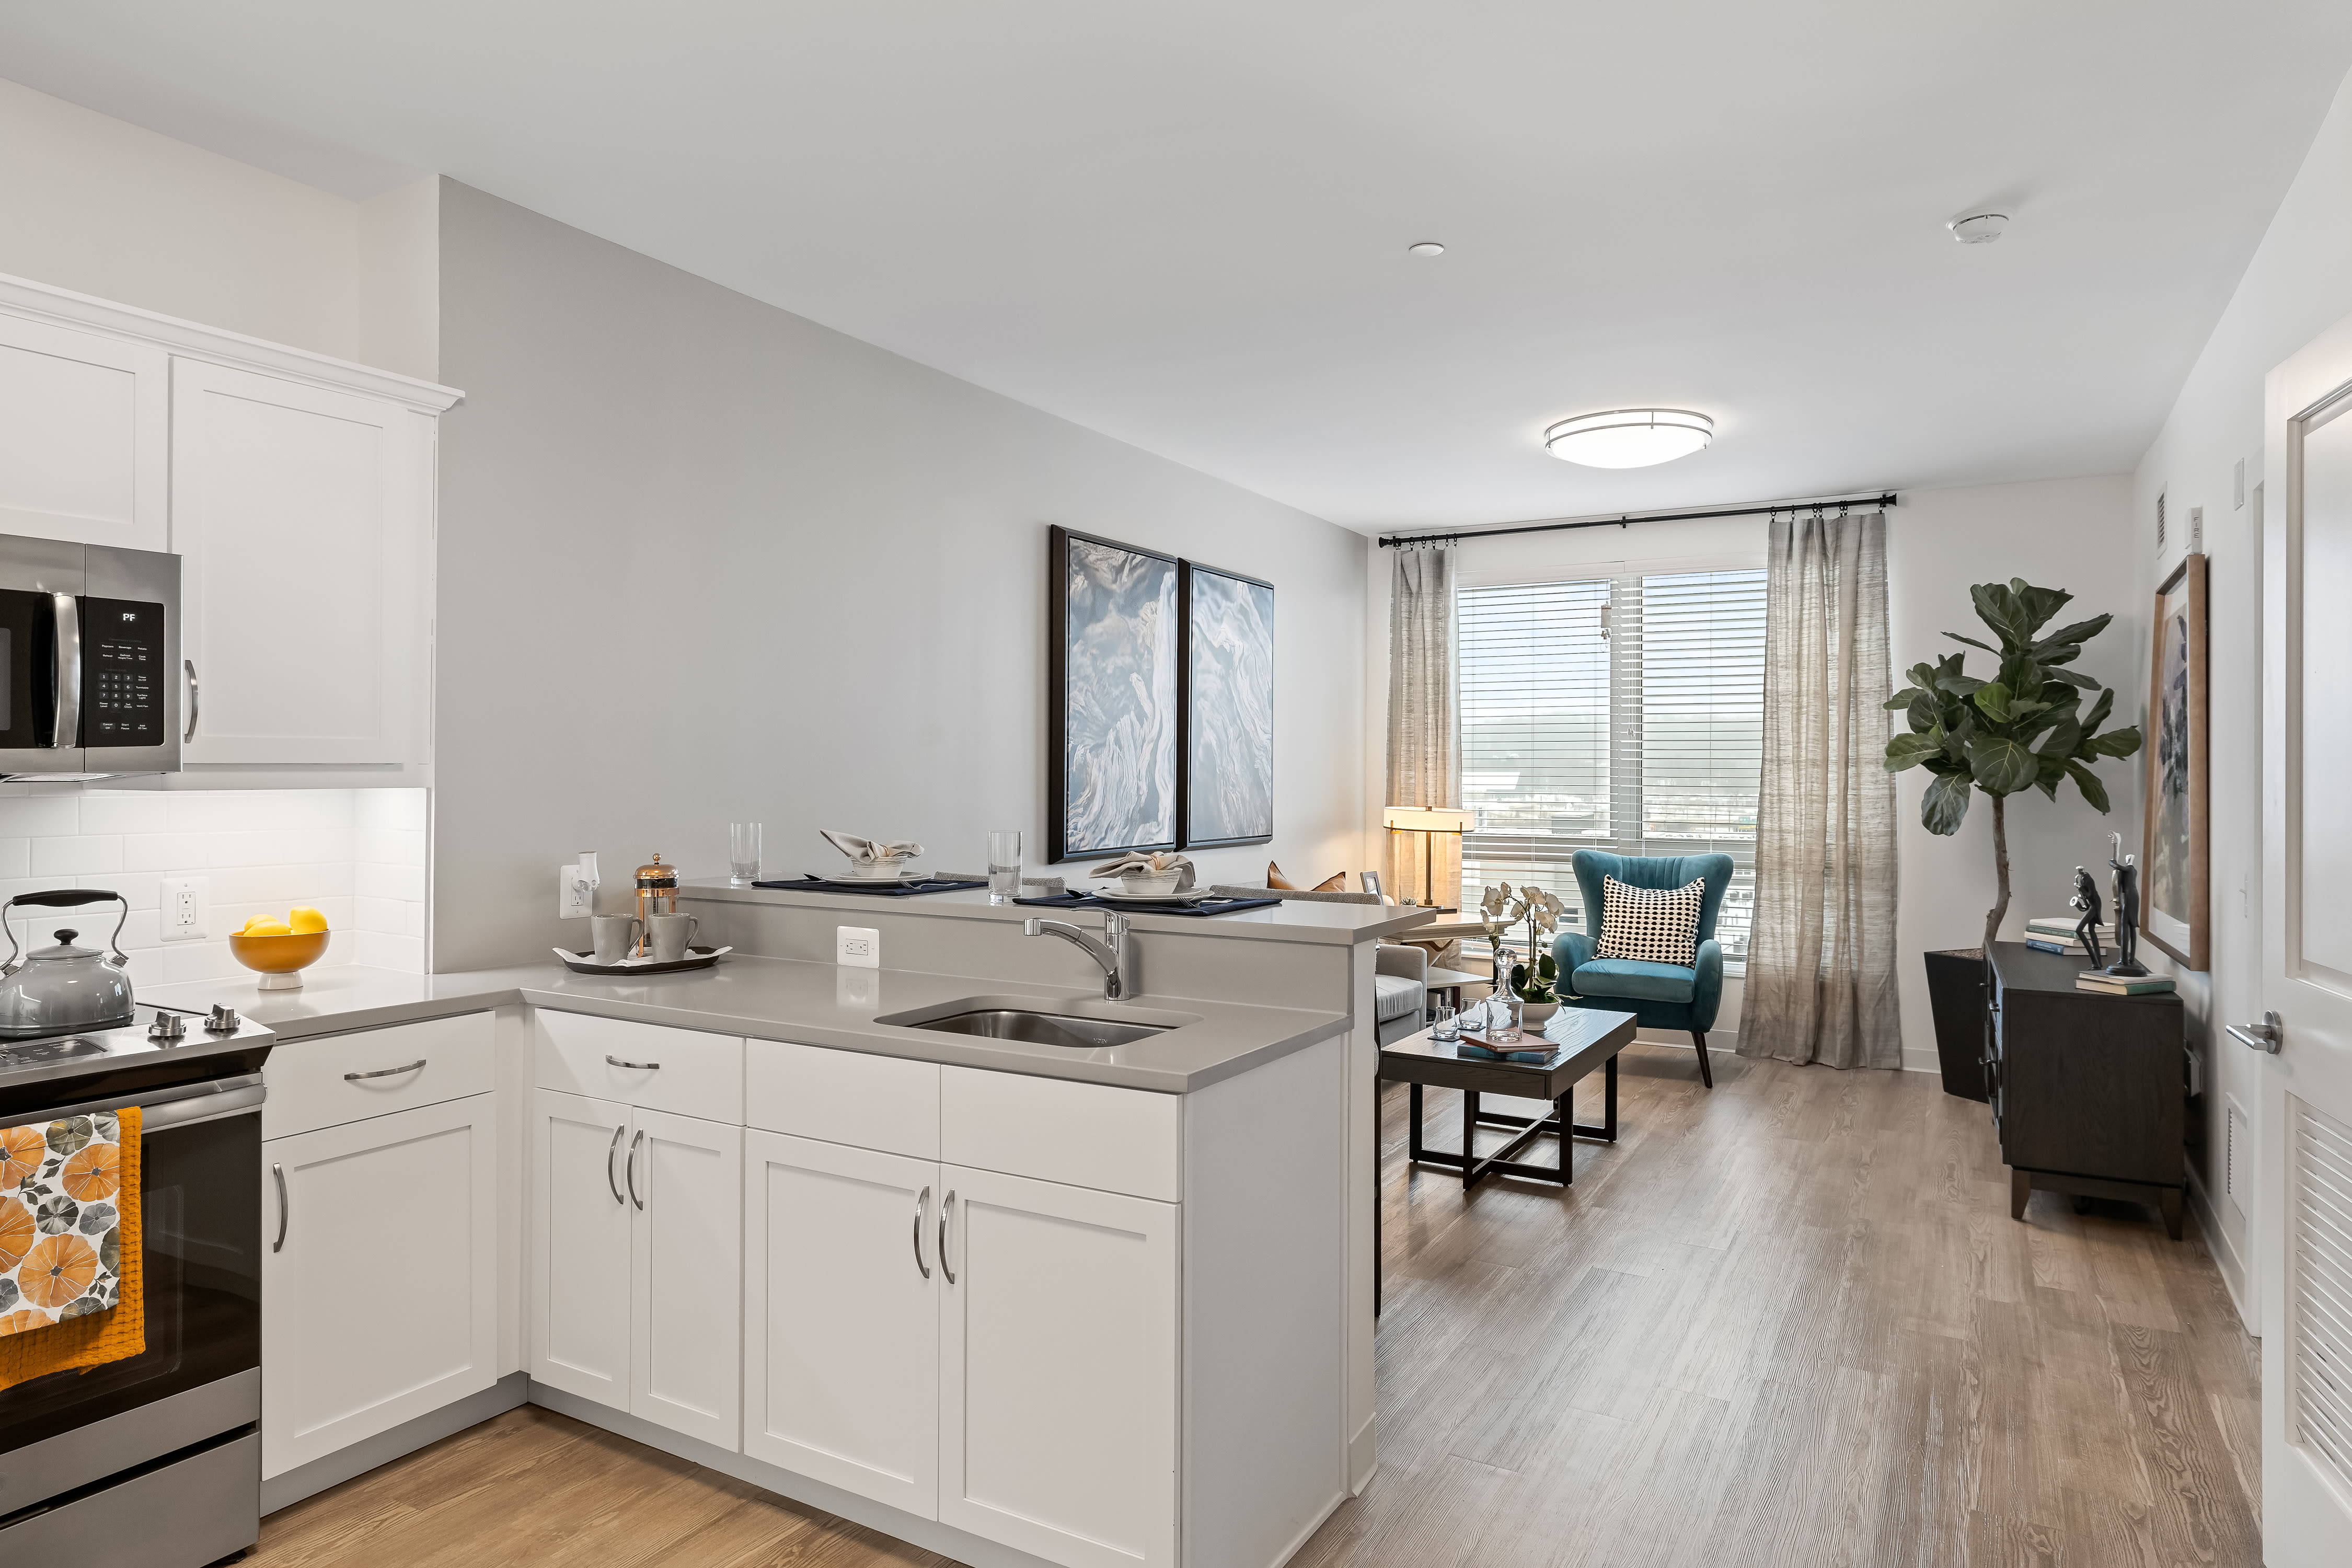 Open floorplan at Anthology of King of Prussia – Now Open in King of Prussia, Pennsylvania